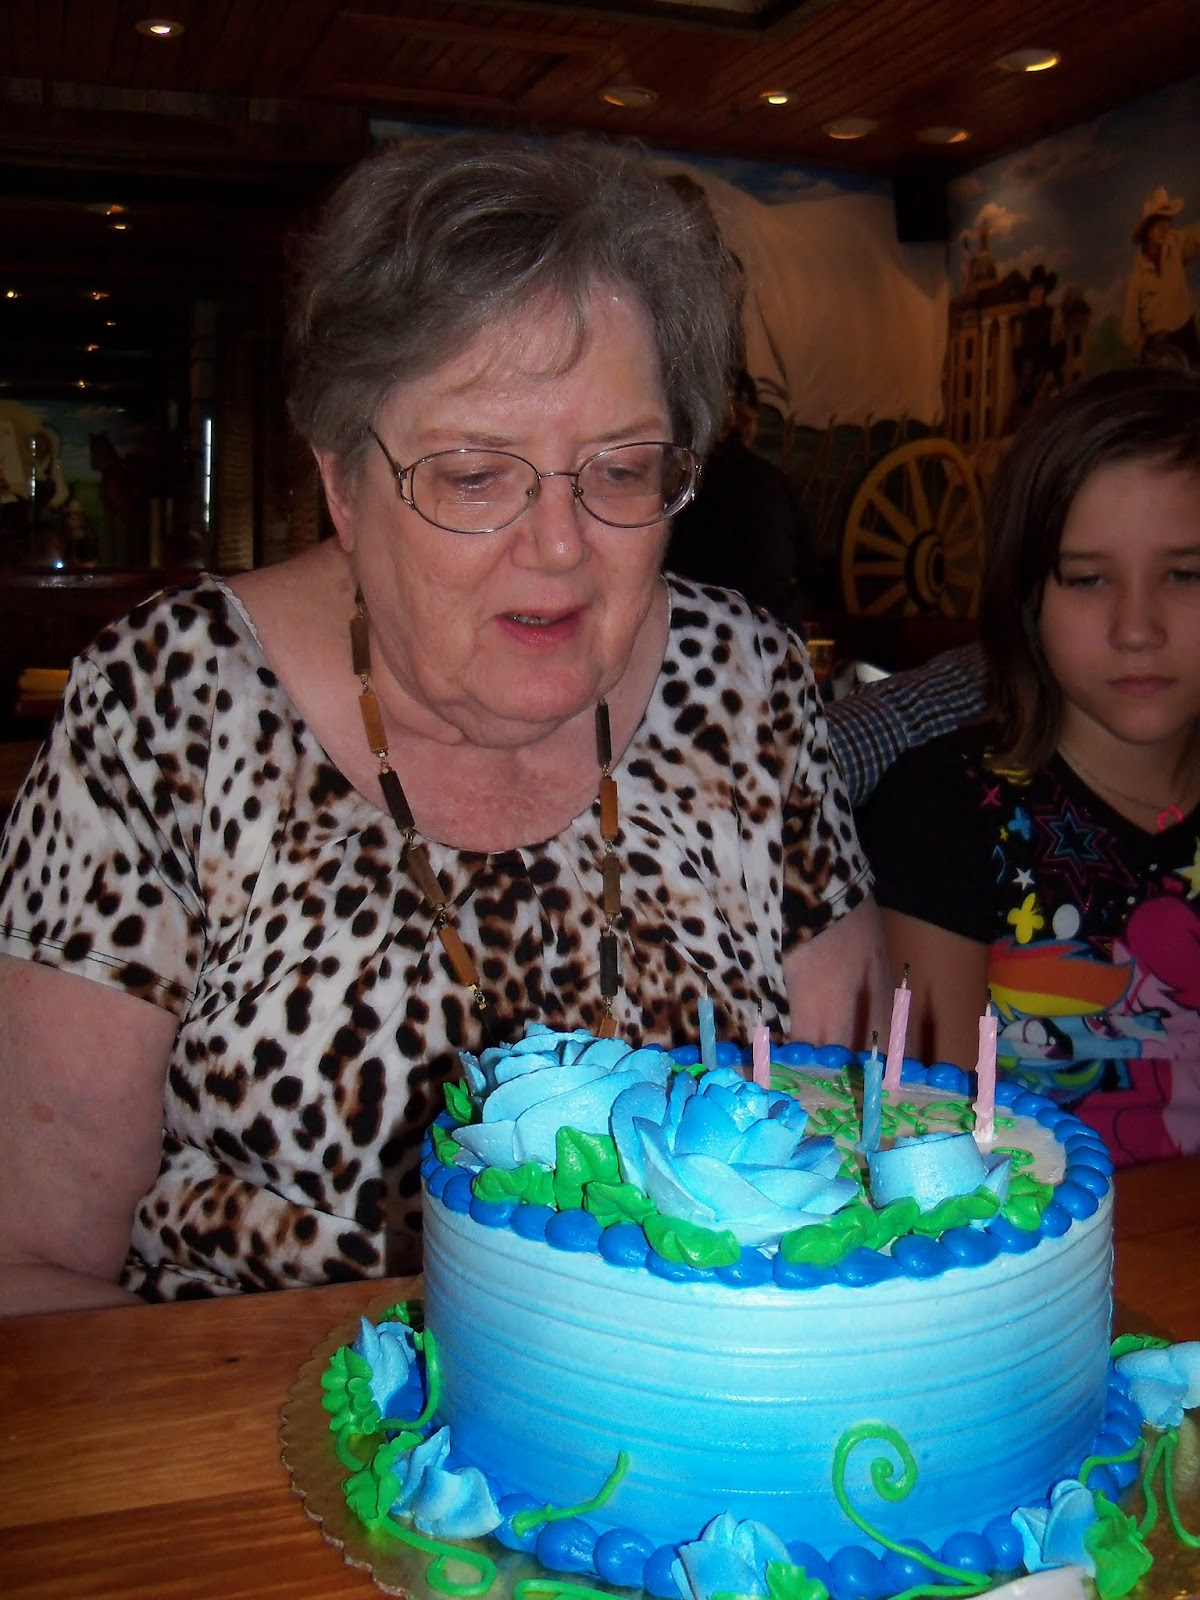 Moms 70th Birthday and Labor Day - 117_0138.JPG